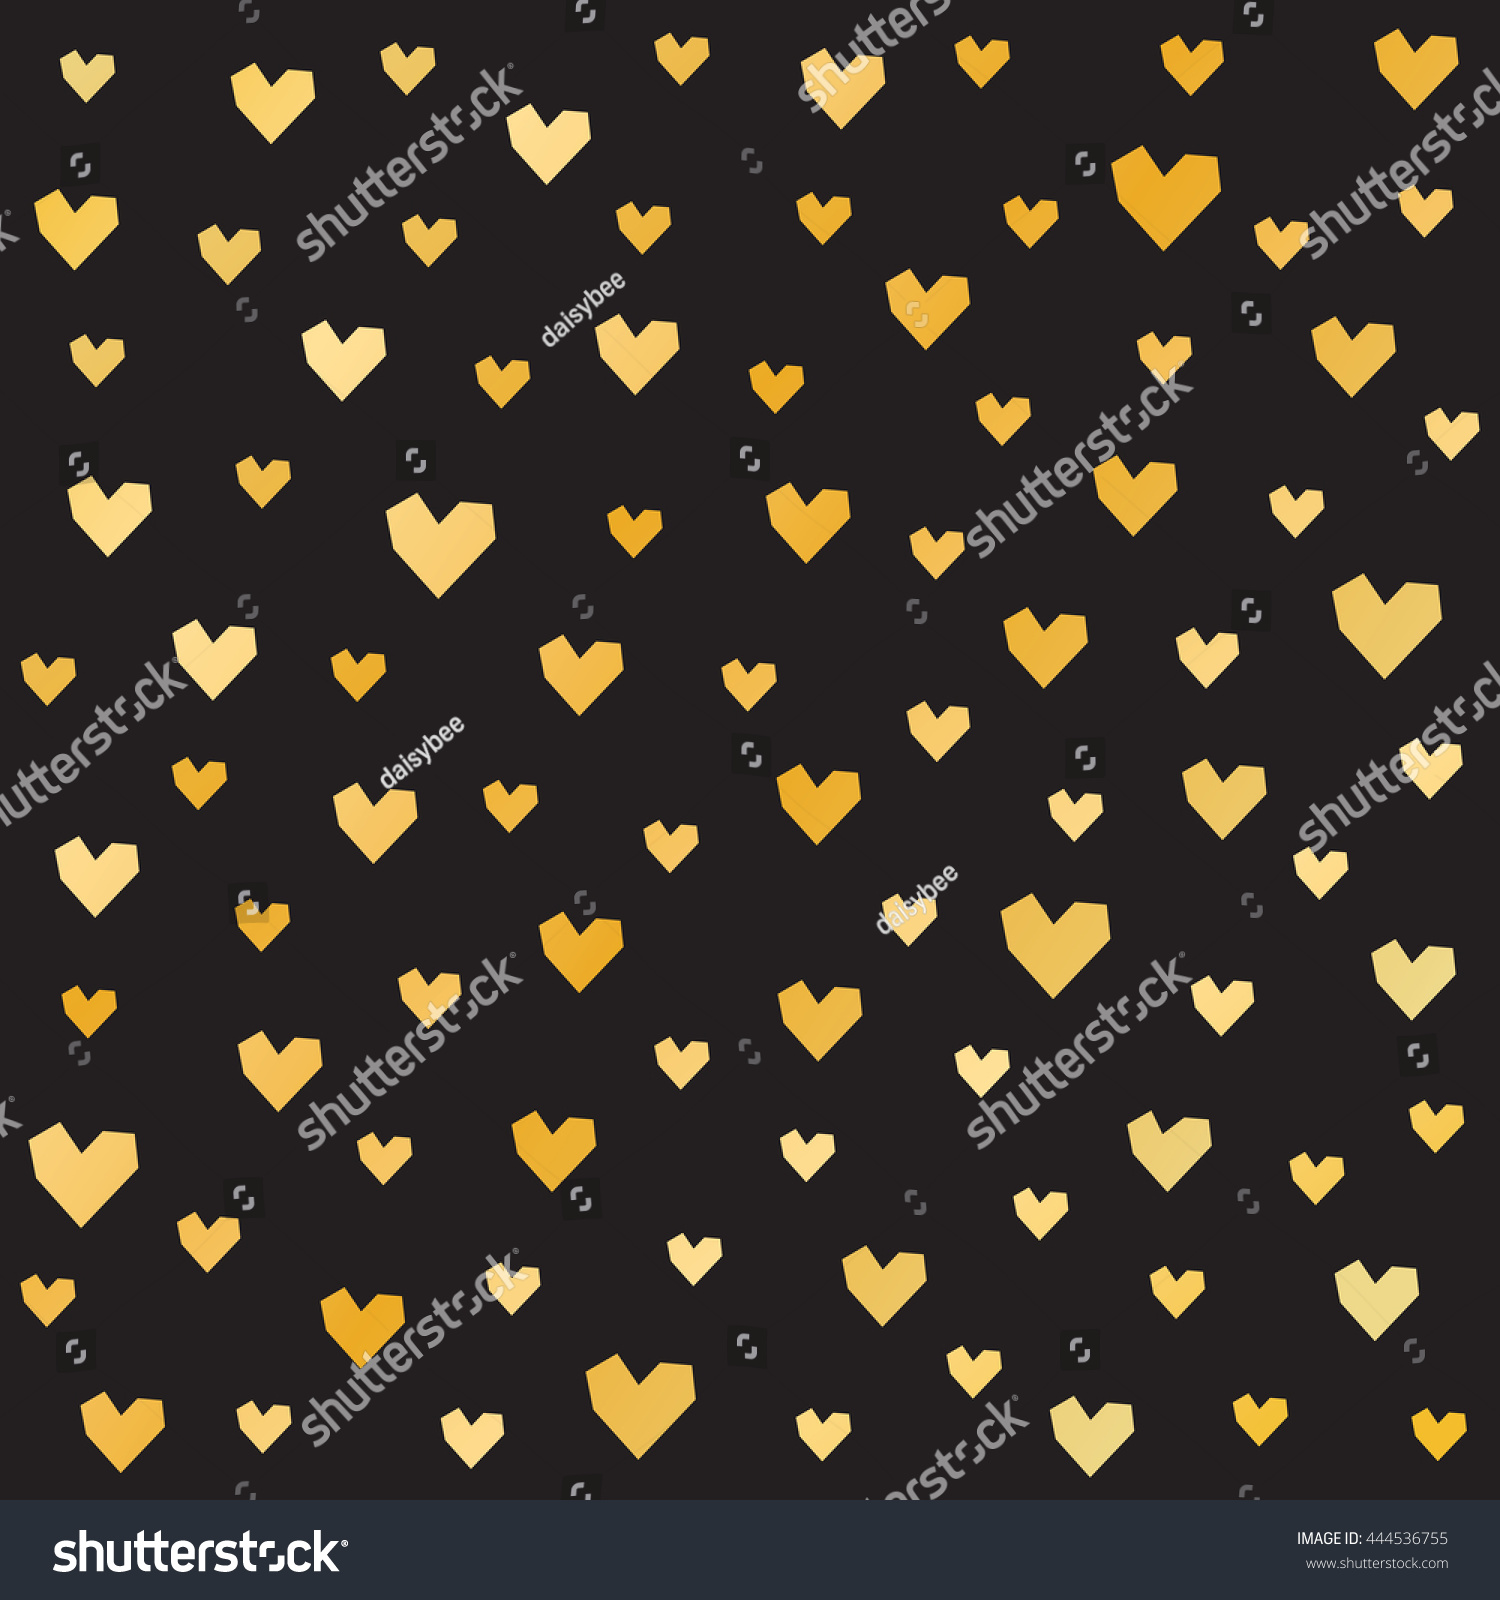 Romantic vector seamless background greeting card wallpaper vector art -  Vectors Illustrations Footage Music Seamless Romantic Pattern For Valentine S Day With Gold Hearts On Black Background Minimal Repeat Background